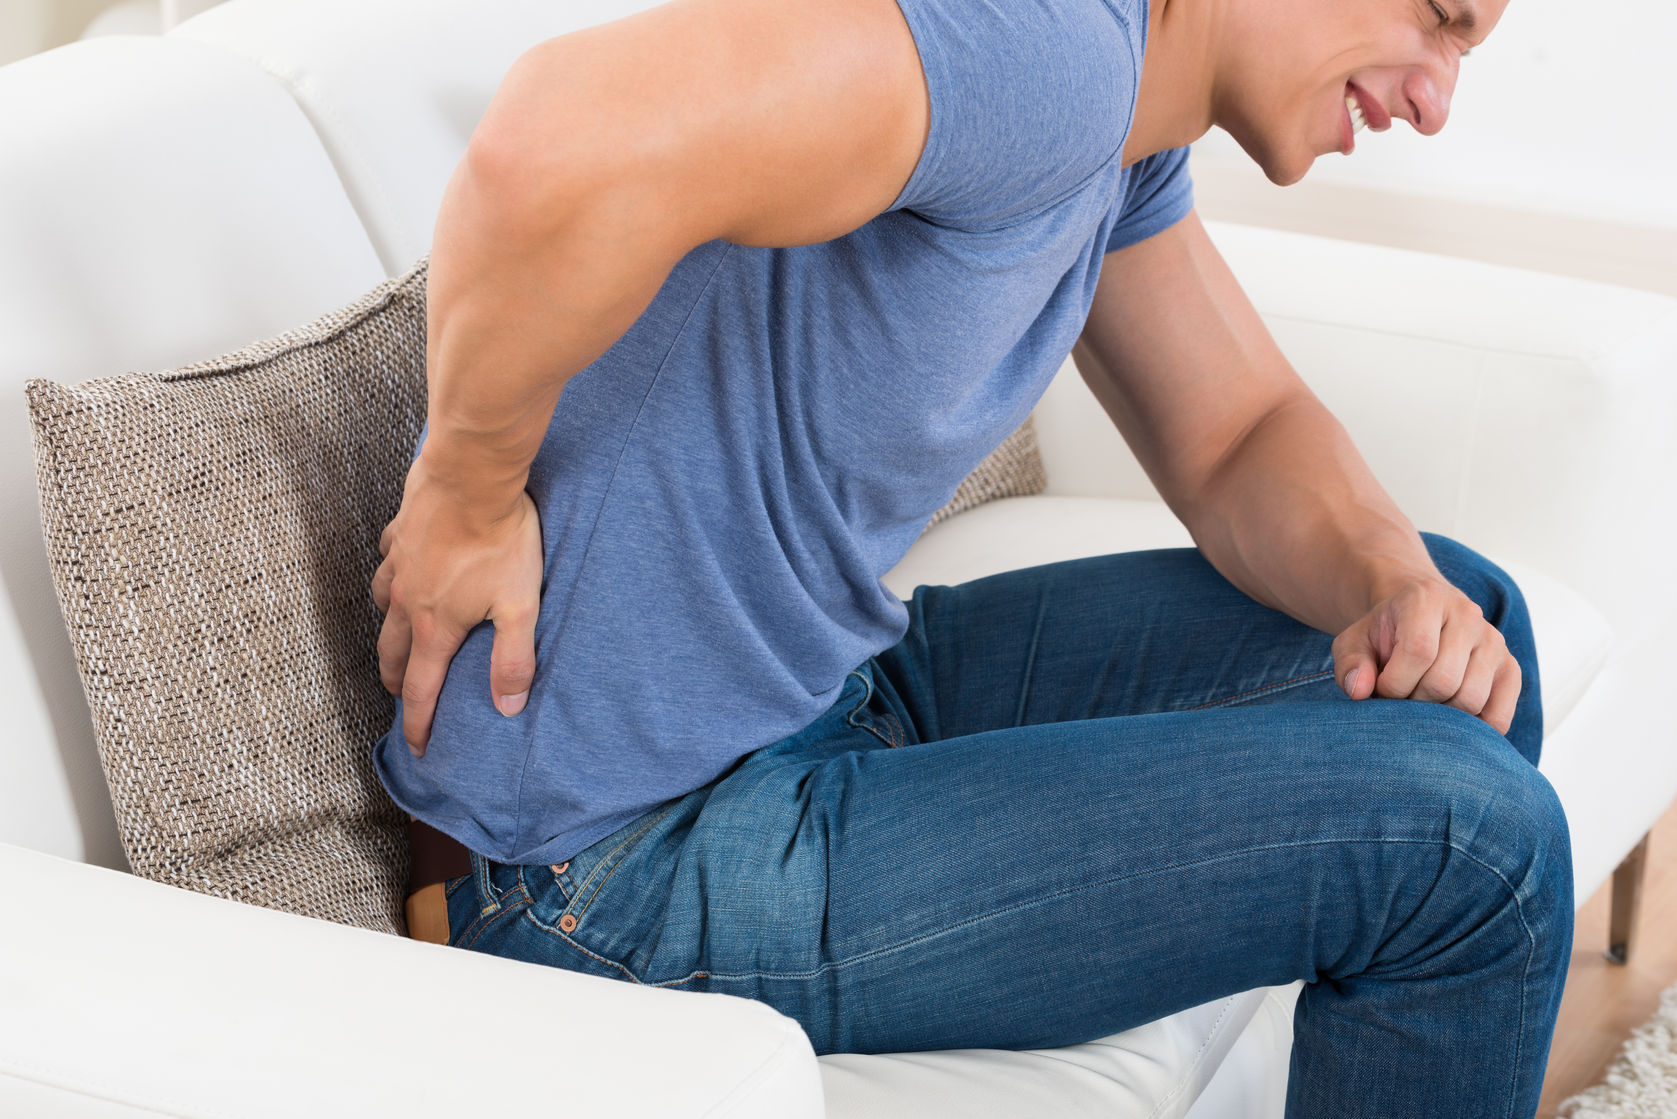 drugs-gabapentinoids-don't-help-back-pain